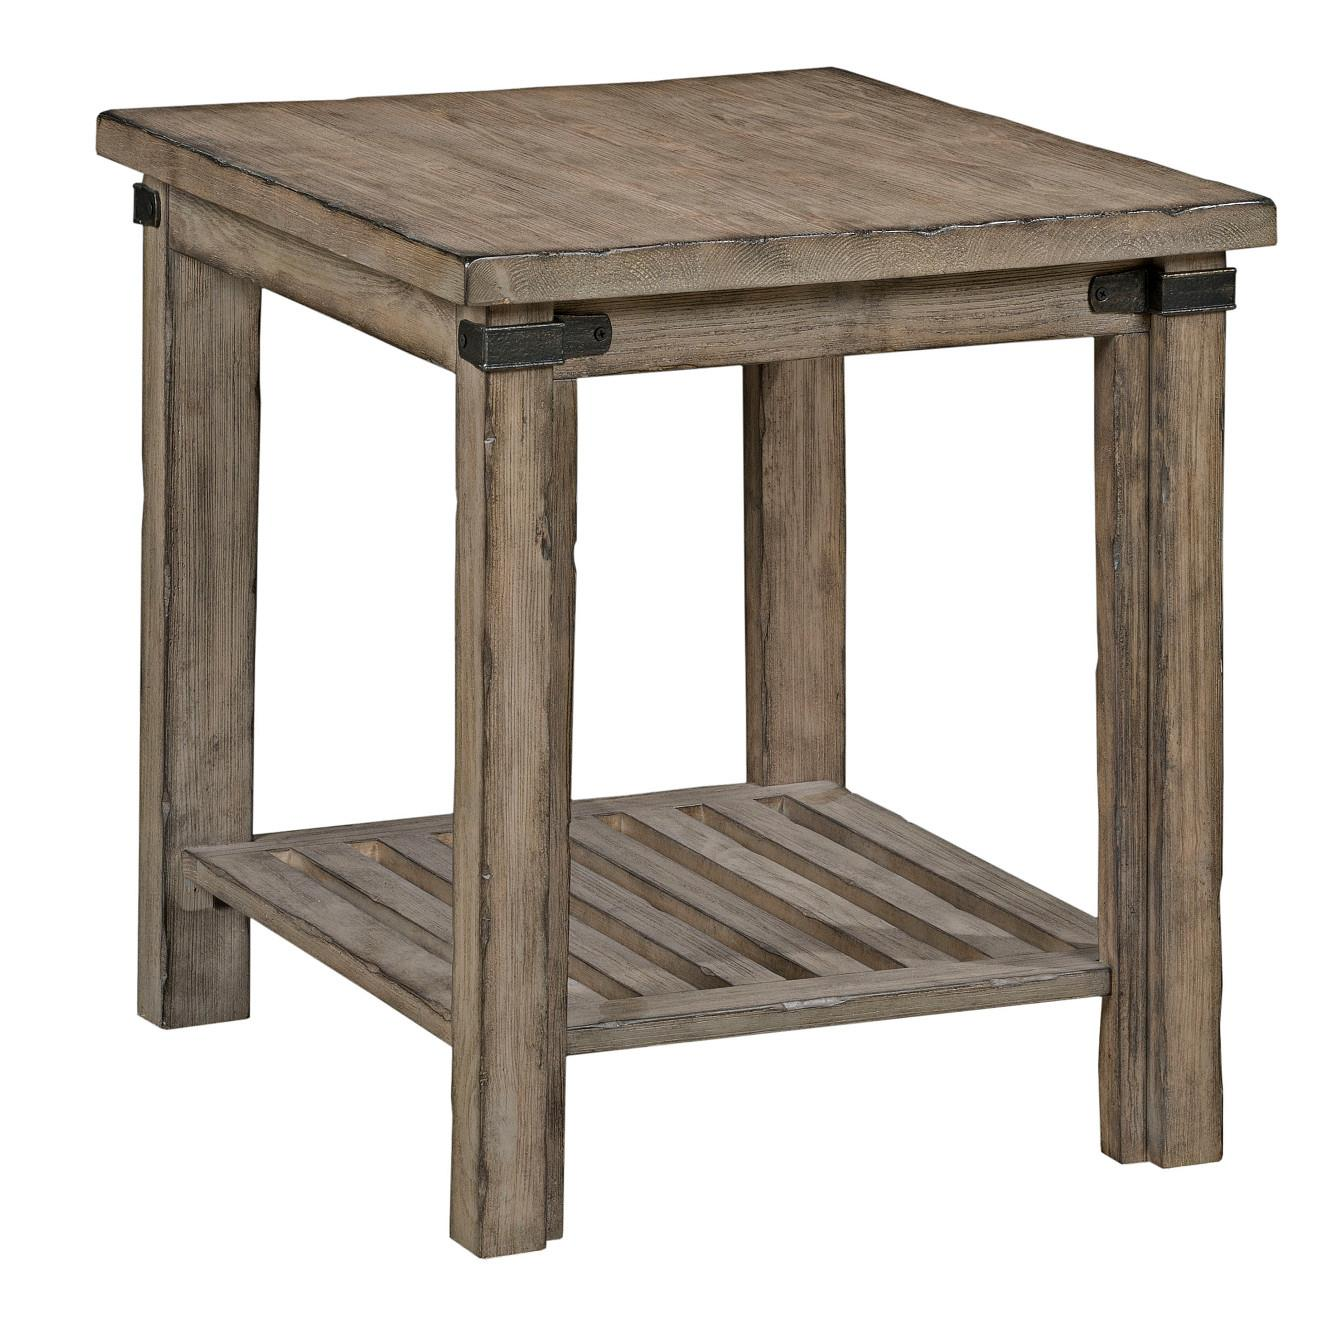 kincaid furniture foundry rustic weathered gray end table lindy products color tables black pipe coffee ikea round dark red leather armchair cottage white outdoor broyhill fontana